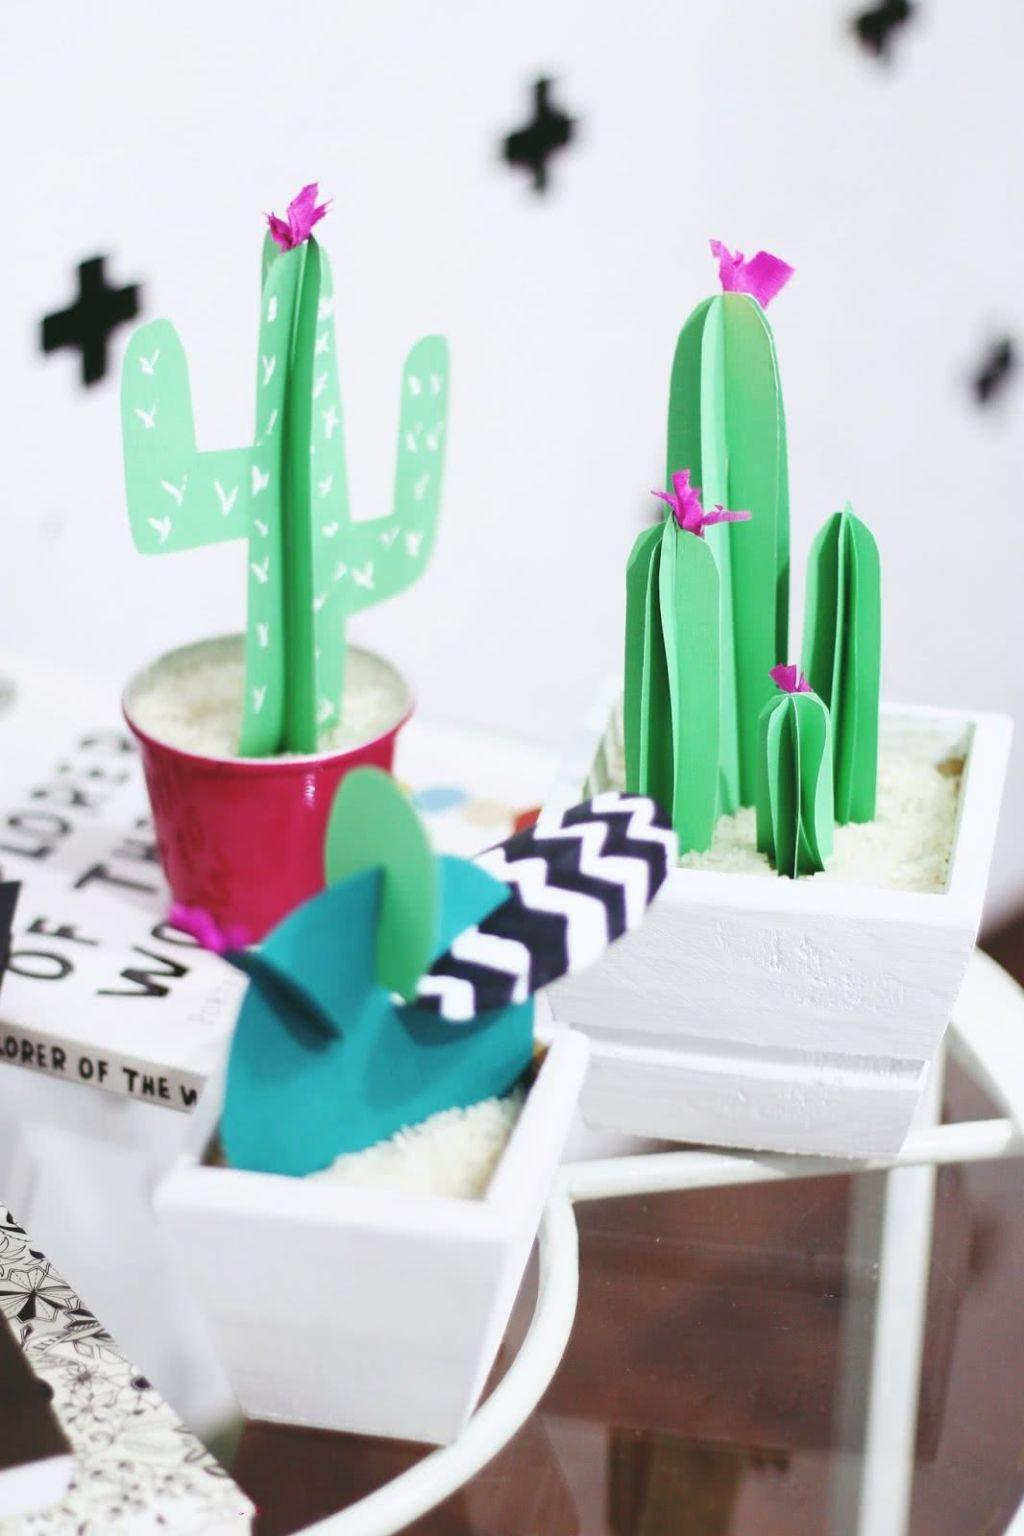 Cacti at home: 60 inspirations to decorate with the plant 46